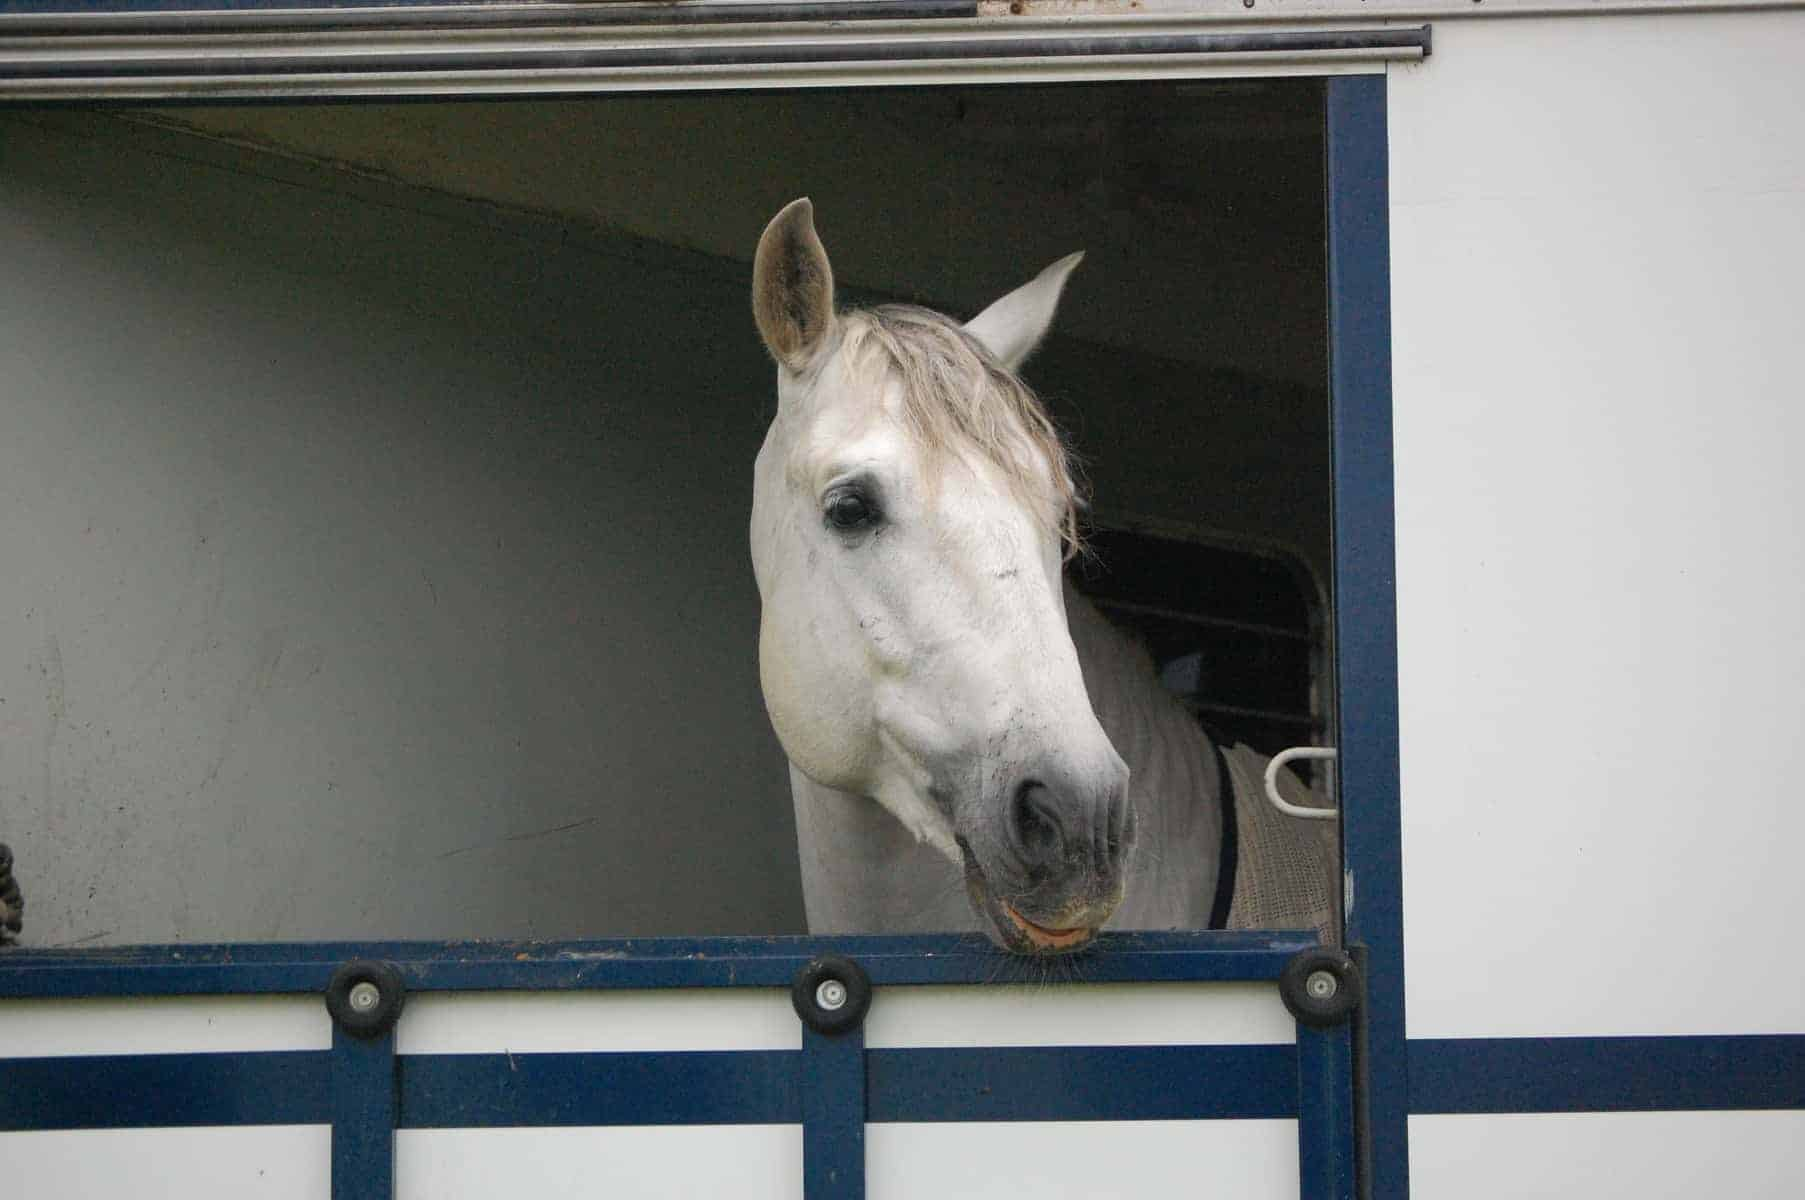 Study: Transportation Related to Equine Gastric Ulcers